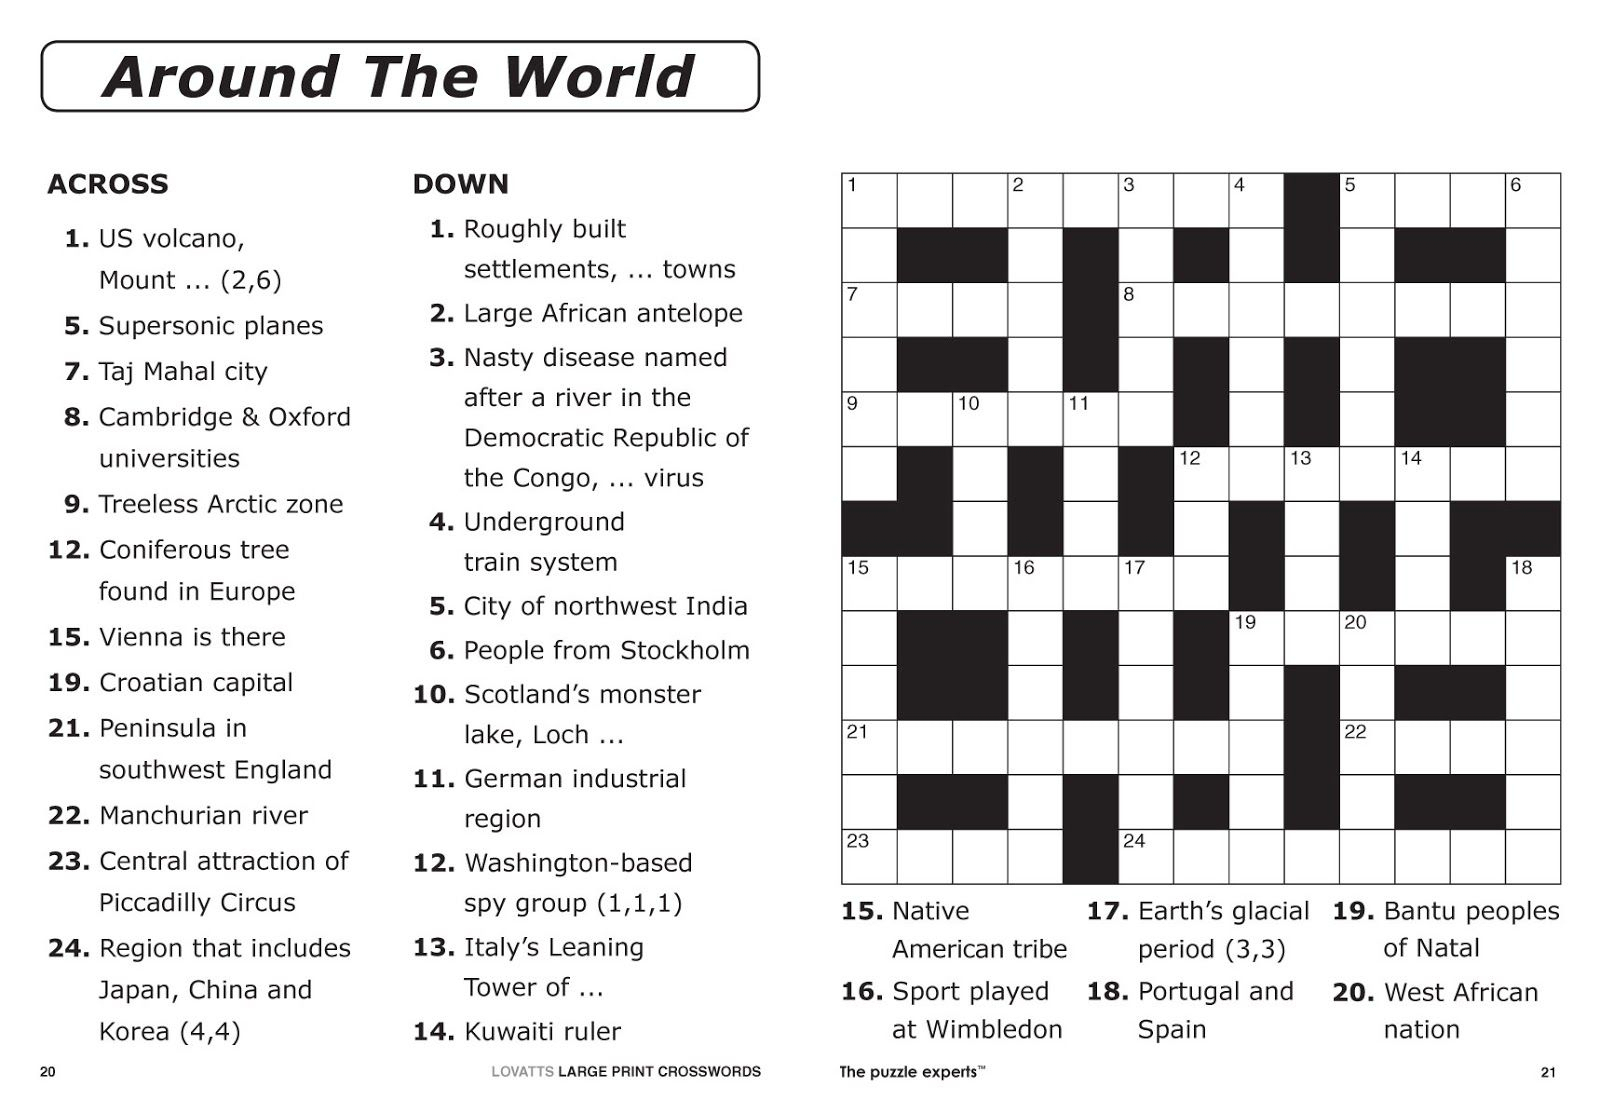 Free Printable Large Print Crossword Puzzles | M3U8 - Printable People Crossword Puzzles